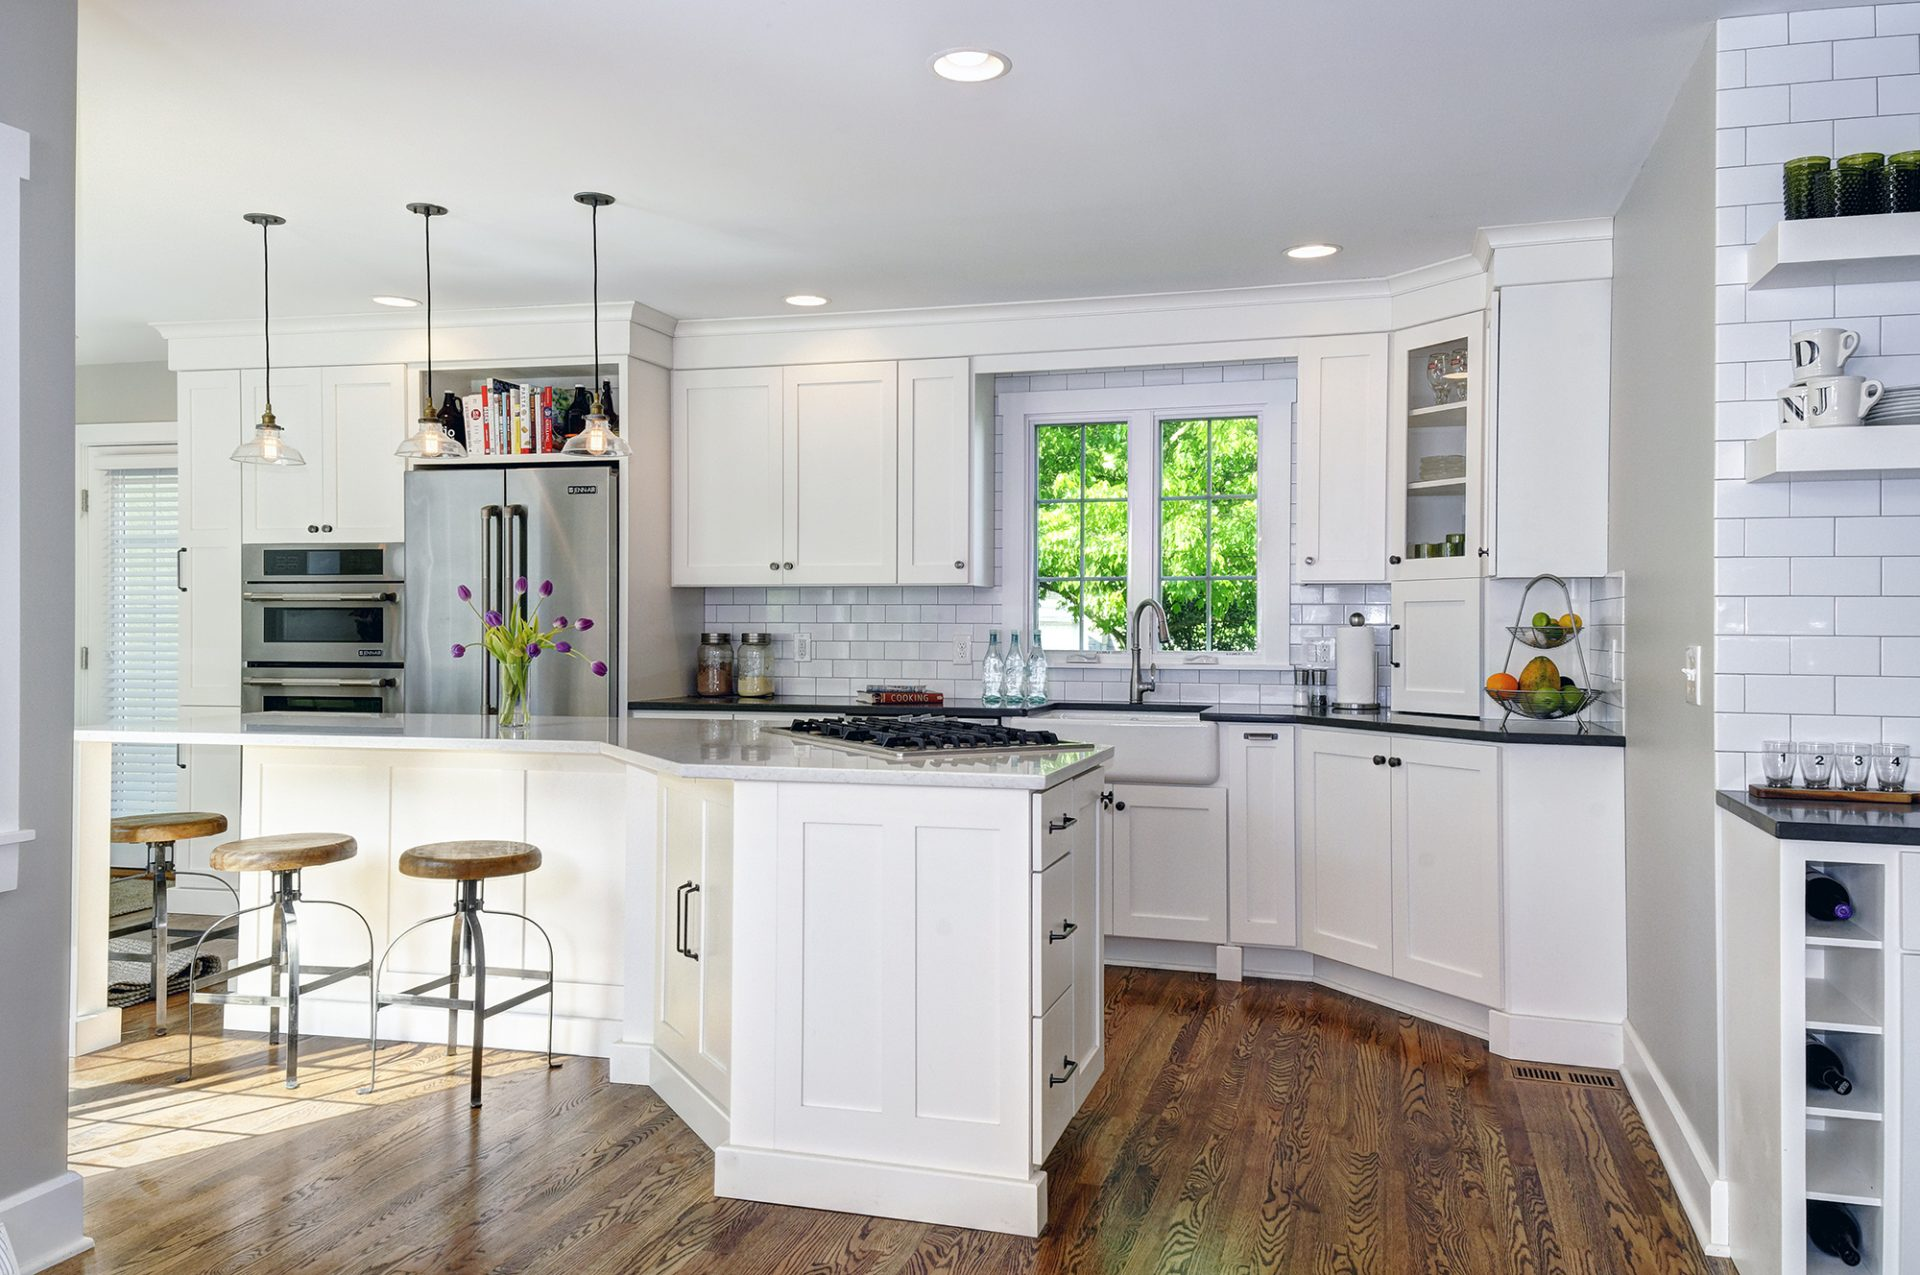 Kitchen renovation, room addition, Upper Arlington, Dave Fox, Remodel, white, subway tile, pendant lighting, farmhouse sink, wine racks, coffee bar